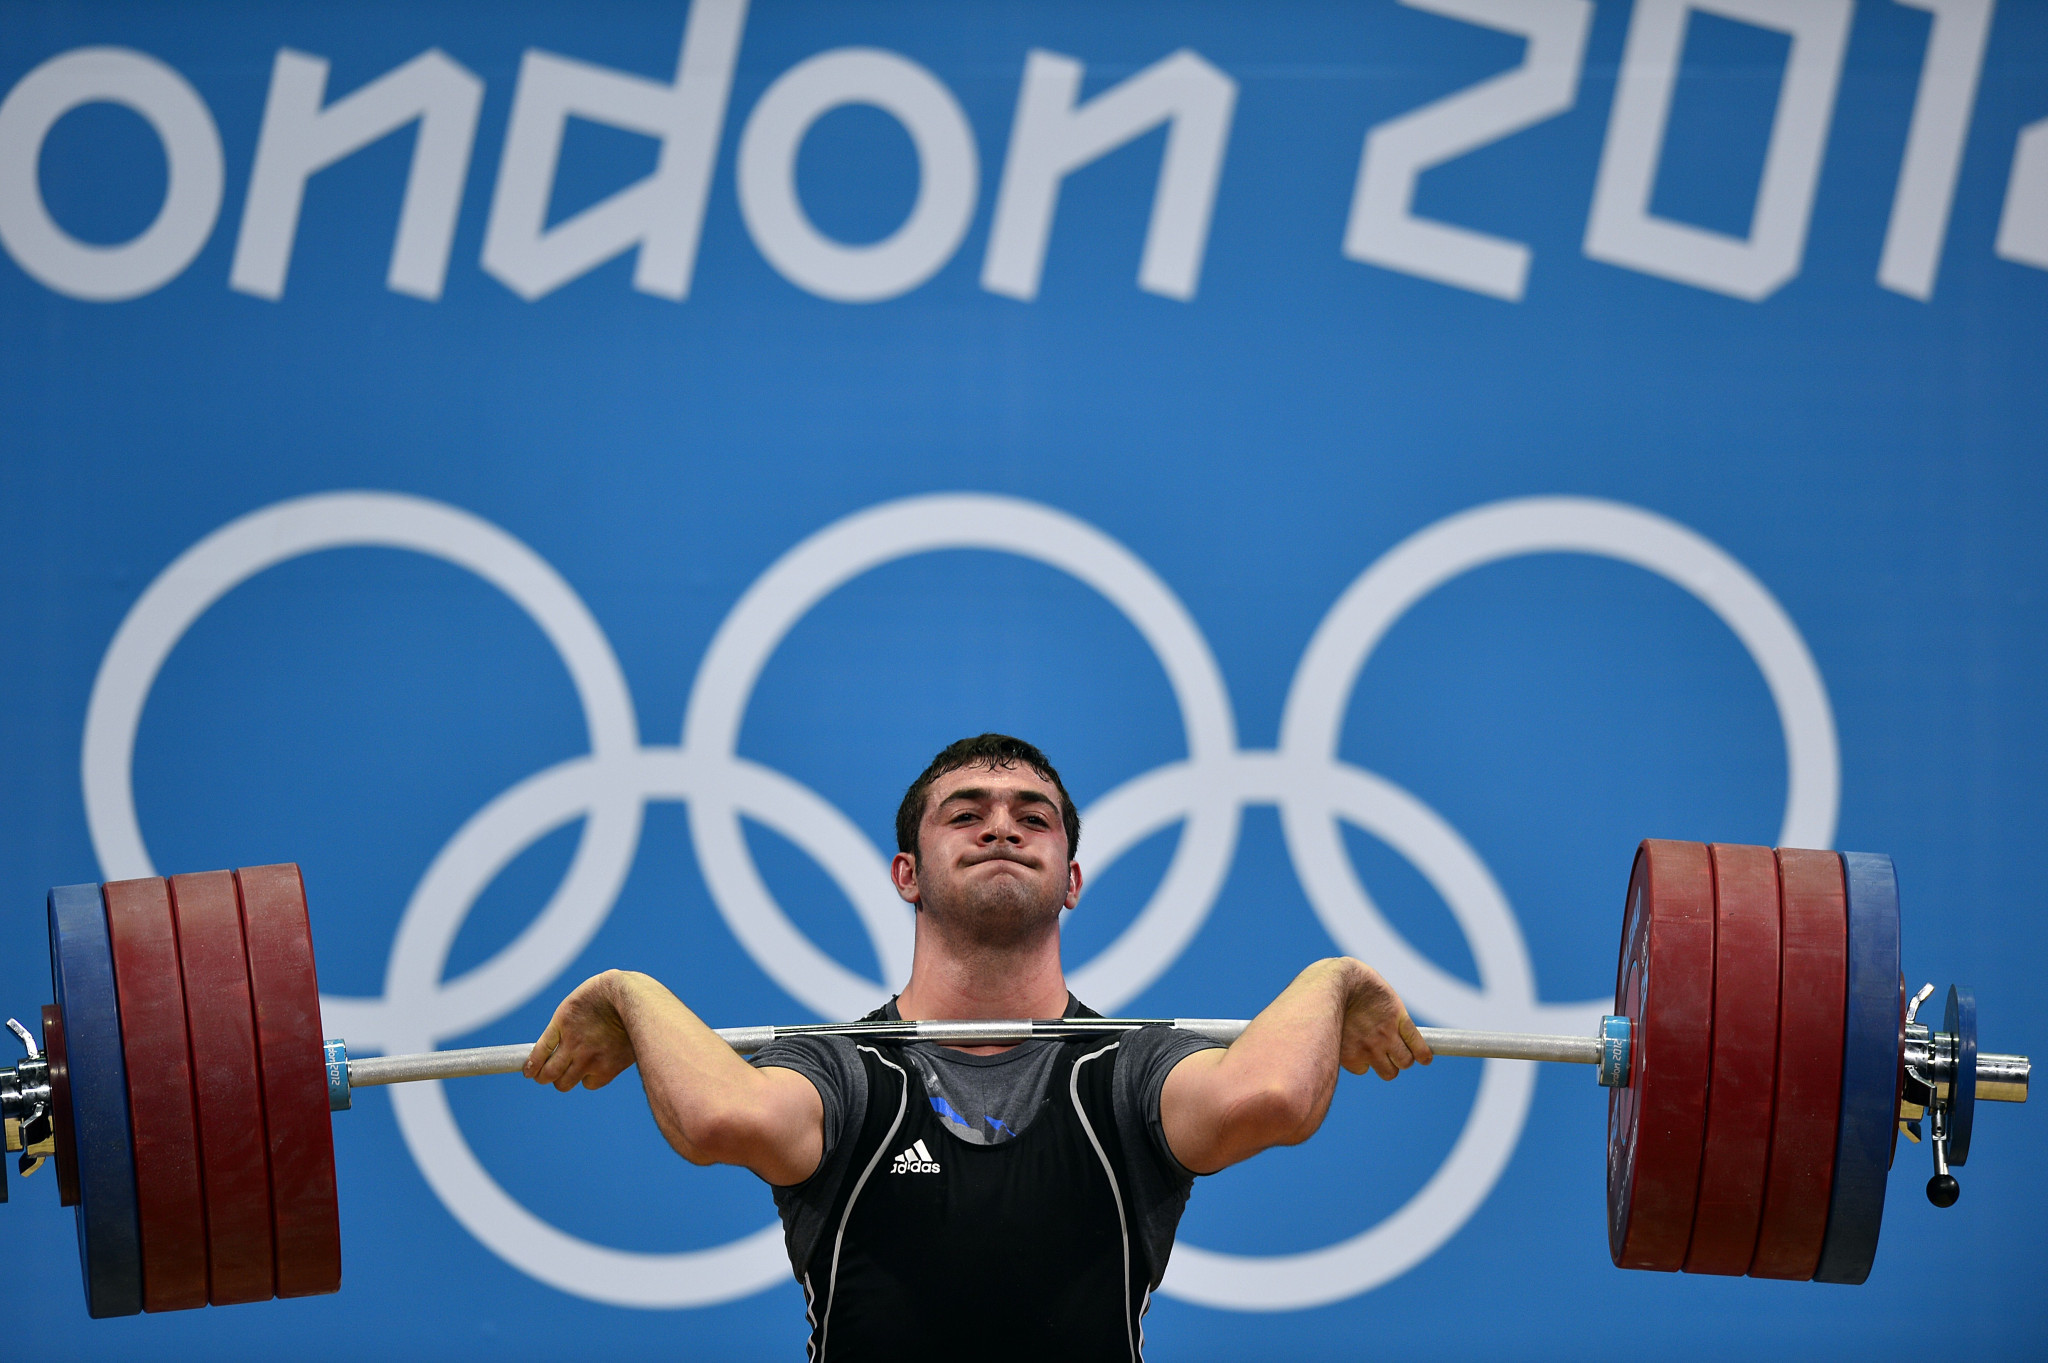 Saeid Mohammadpourkarkaragh is the sole men's gold medal upgrade from London 2012 ©Getty Images